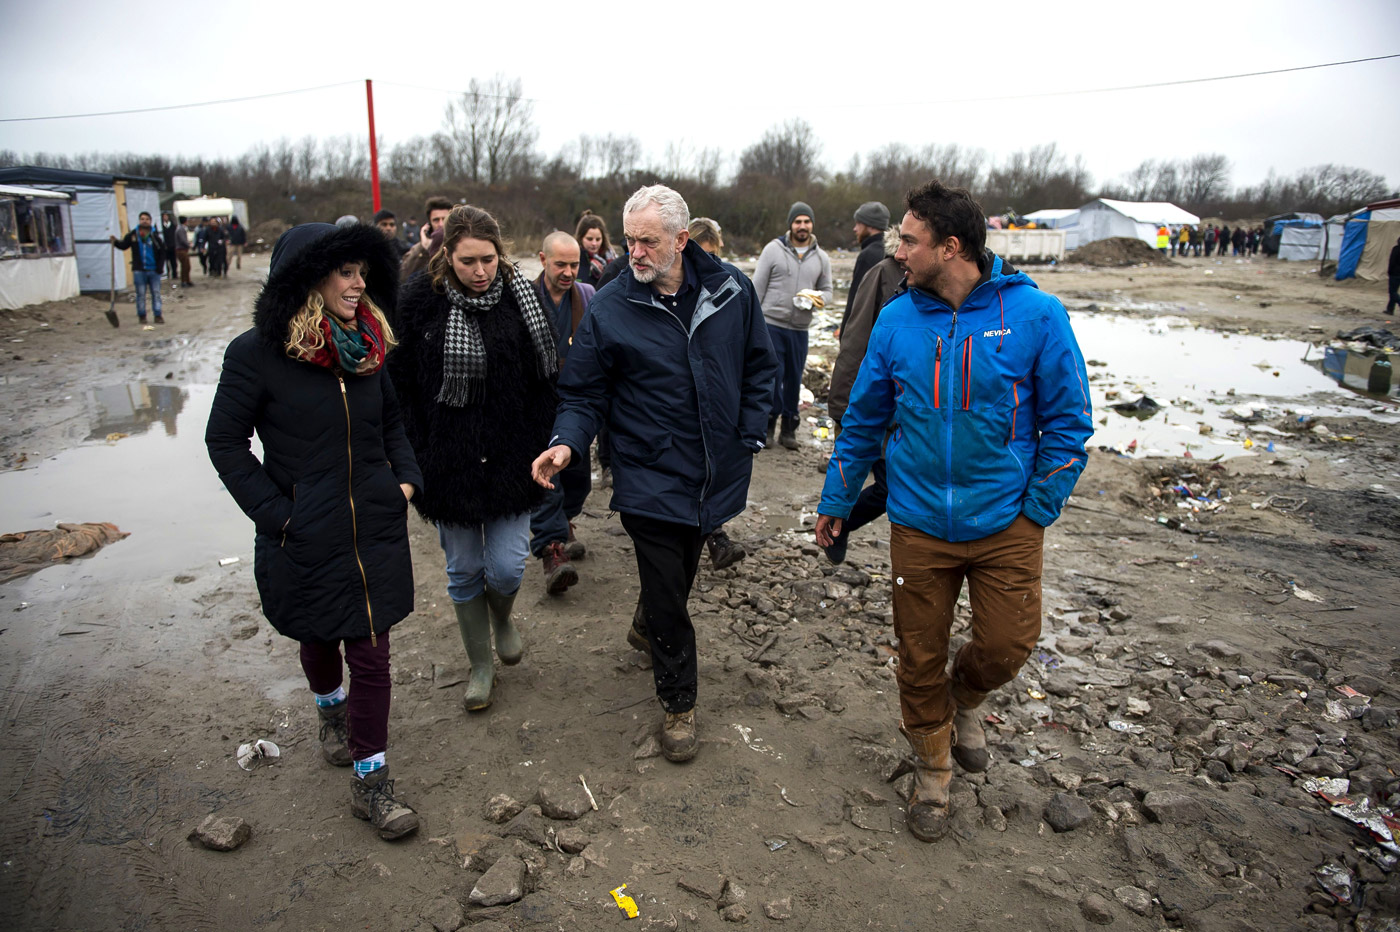 Leader of the Labour Party Jeremy Corbyn visits the camp known as the 'Jungle' in Calais, France, where thousands of migrants and refugees attempting to reach the UK are currently living. Jeremy Corbyn visits 'The Jungle', Calais, France - 23 Jan 2016(Rex Features via AP Images)